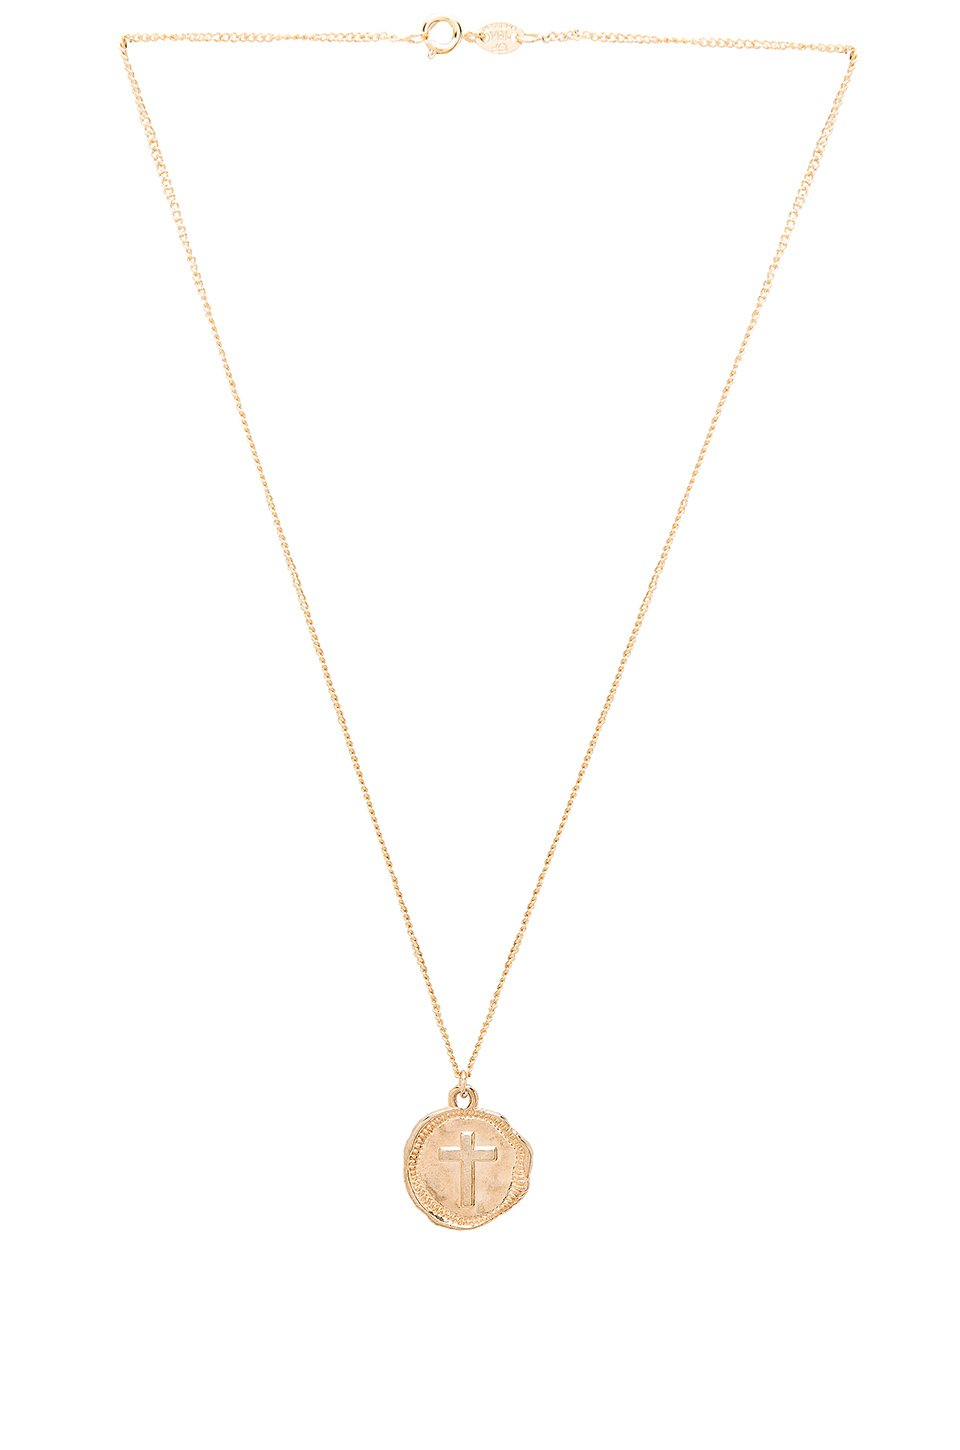 joolz by Martha Calvo Cross Coin Necklace in 14K Gold Plated | REVOLVE